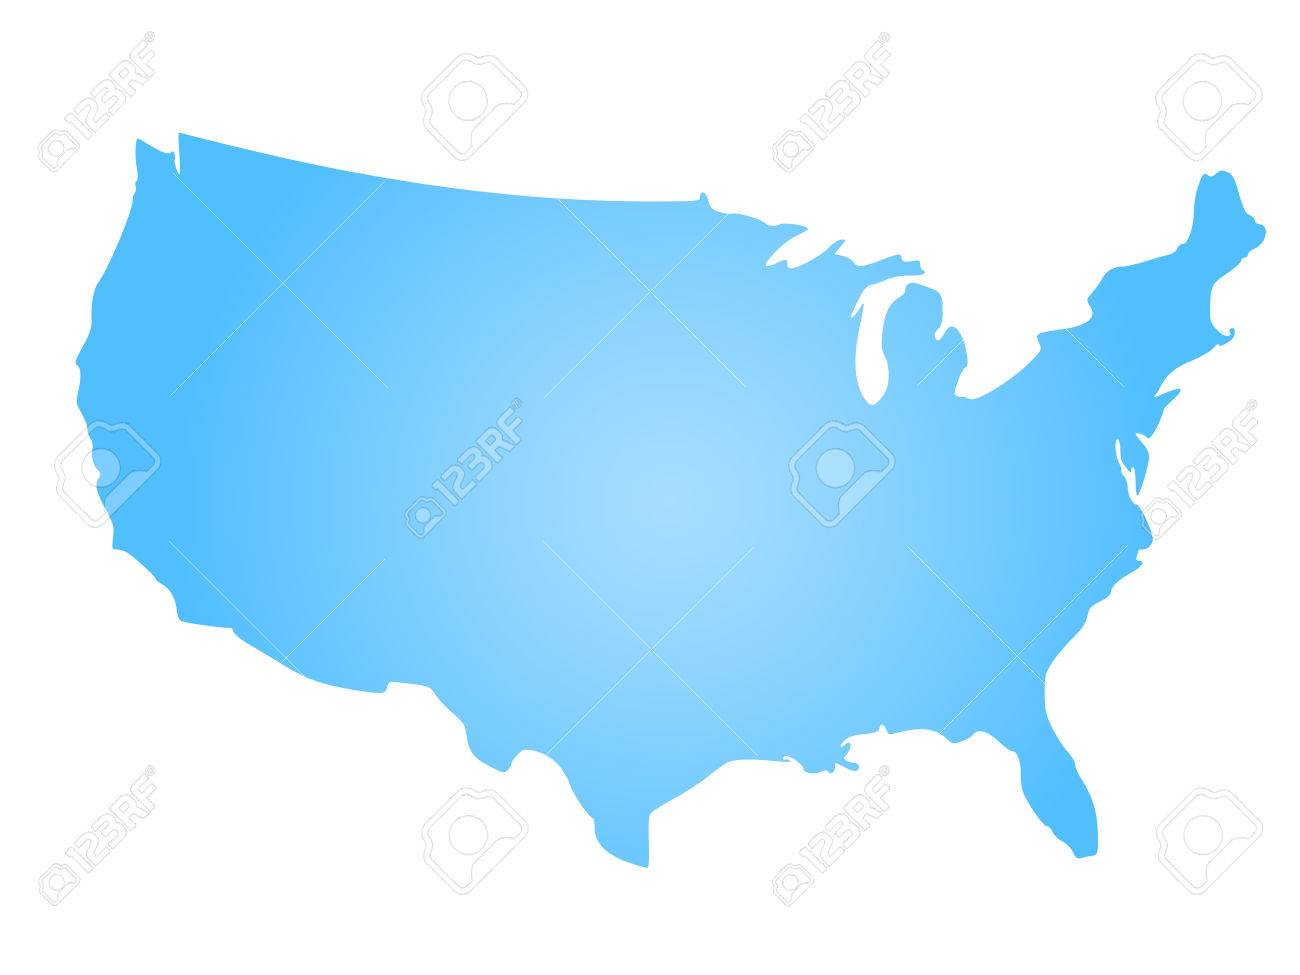 Blue radial grant silhouette map of United States of America,.. on blue honduras map, blue map of the world, blue israel map, blue denmark map, blue japan map, blue international map, blue namibia map, blue florida, blue nevada map, blue kentucky, blue state flags, blue usa map, blue africa map, blue louisiana, blue legend, blue us map, blue south america map, new york state congressional districts map, blue china map, blue virginia,